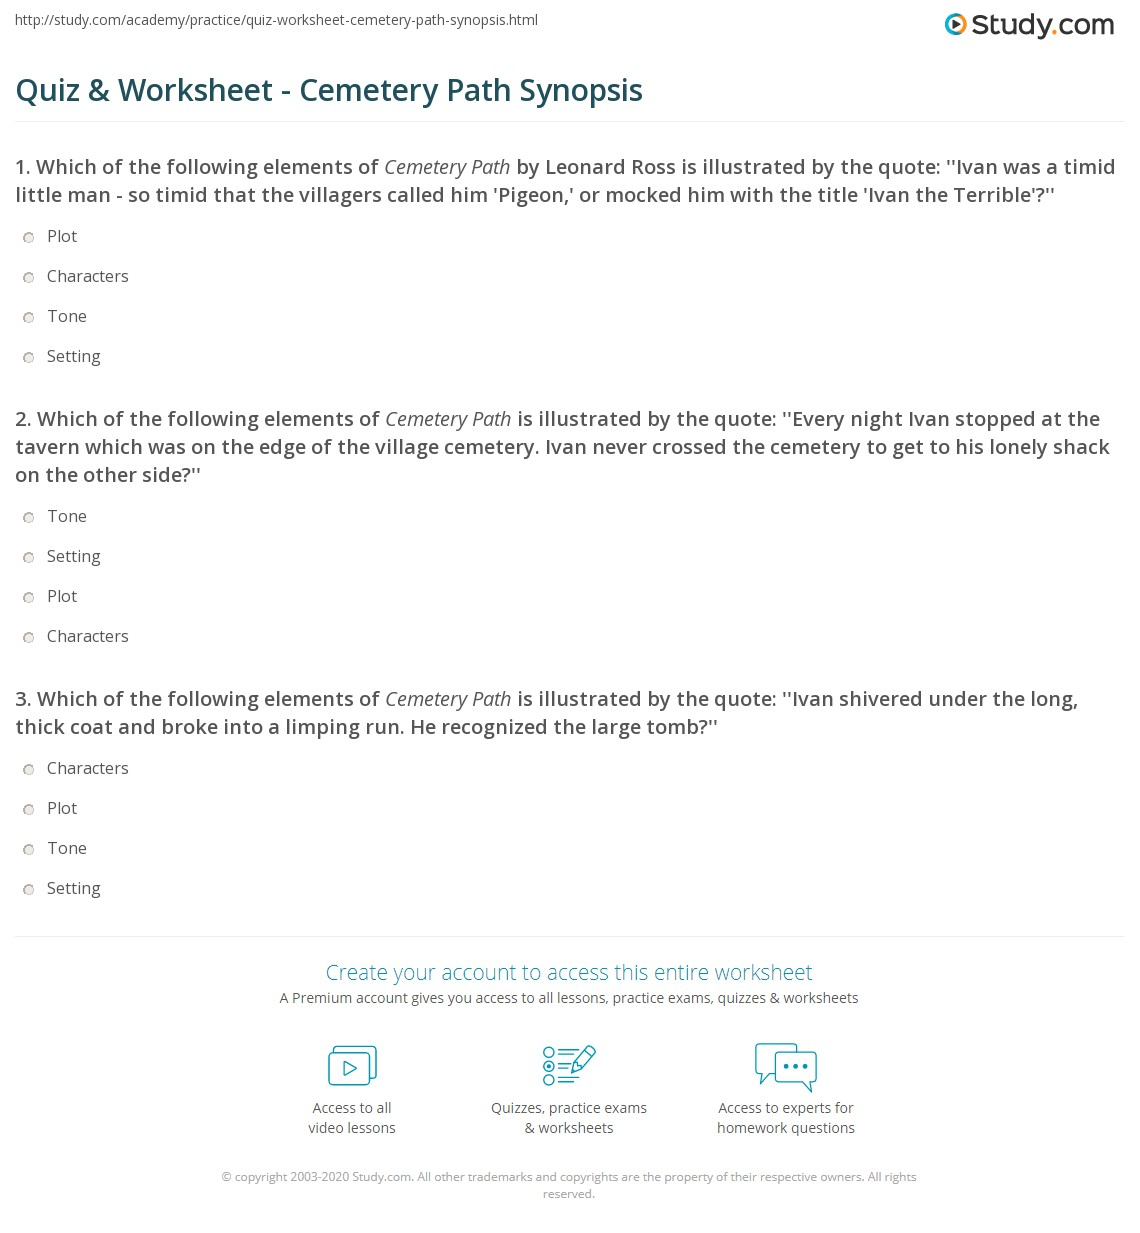 Quiz & Worksheet - Cemetery Path Synopsis | Study.com